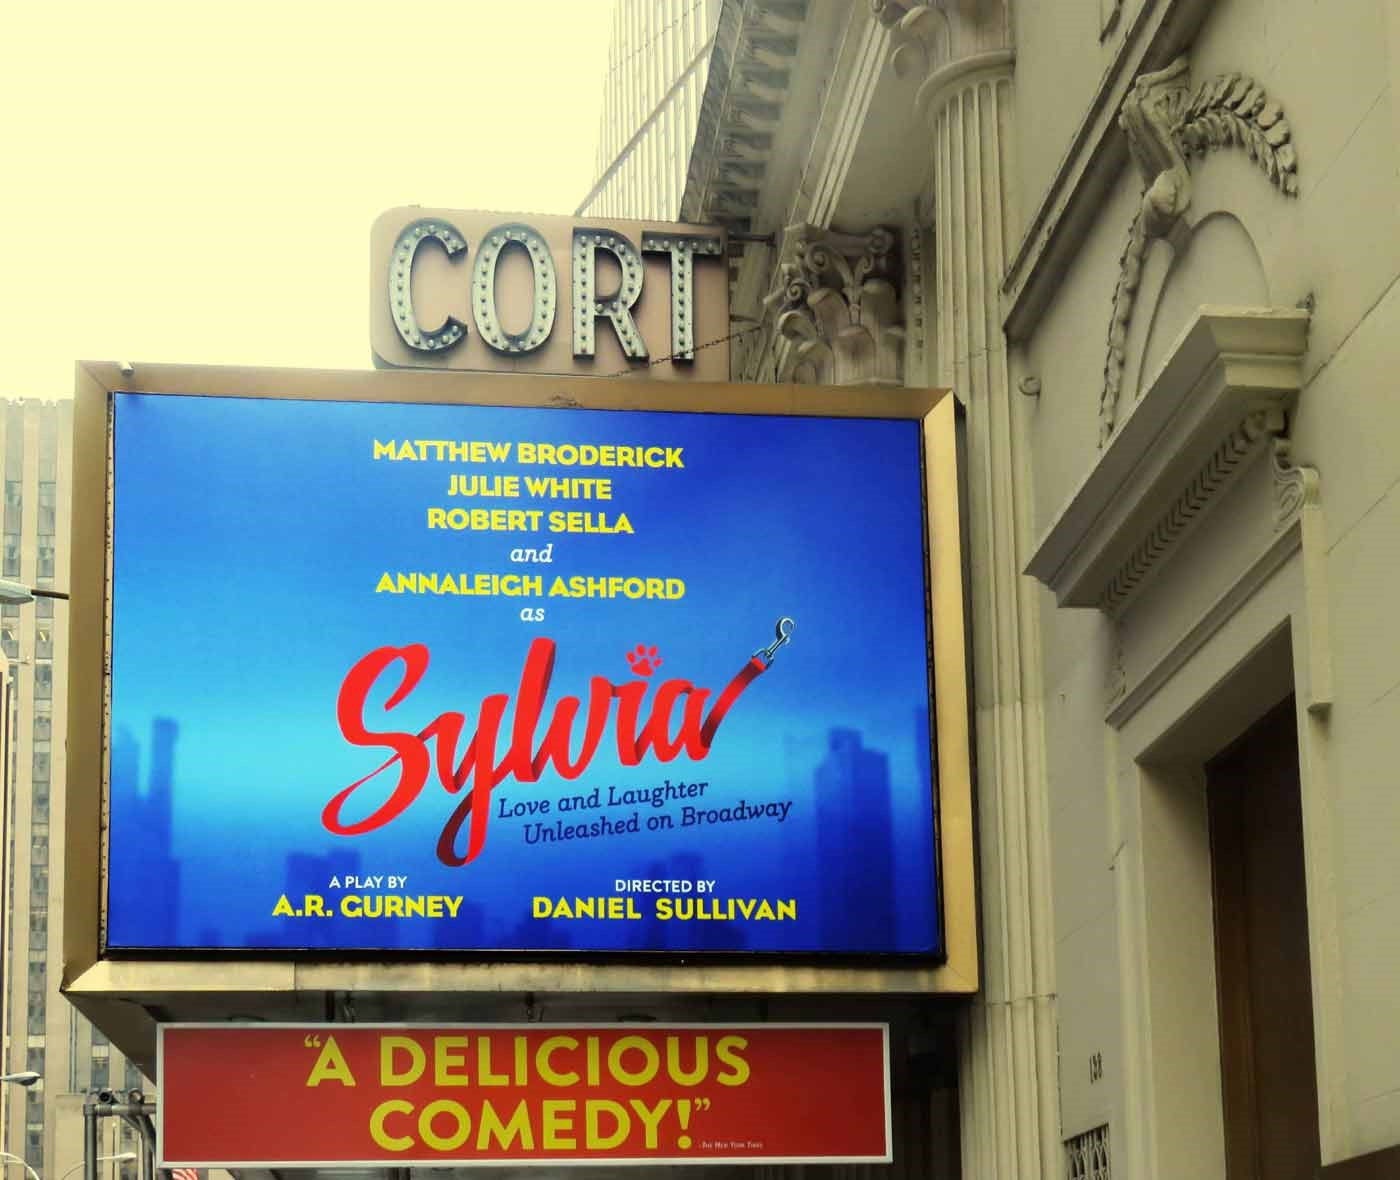 Special Box Office opening Event to be Held at the Cort Theatre